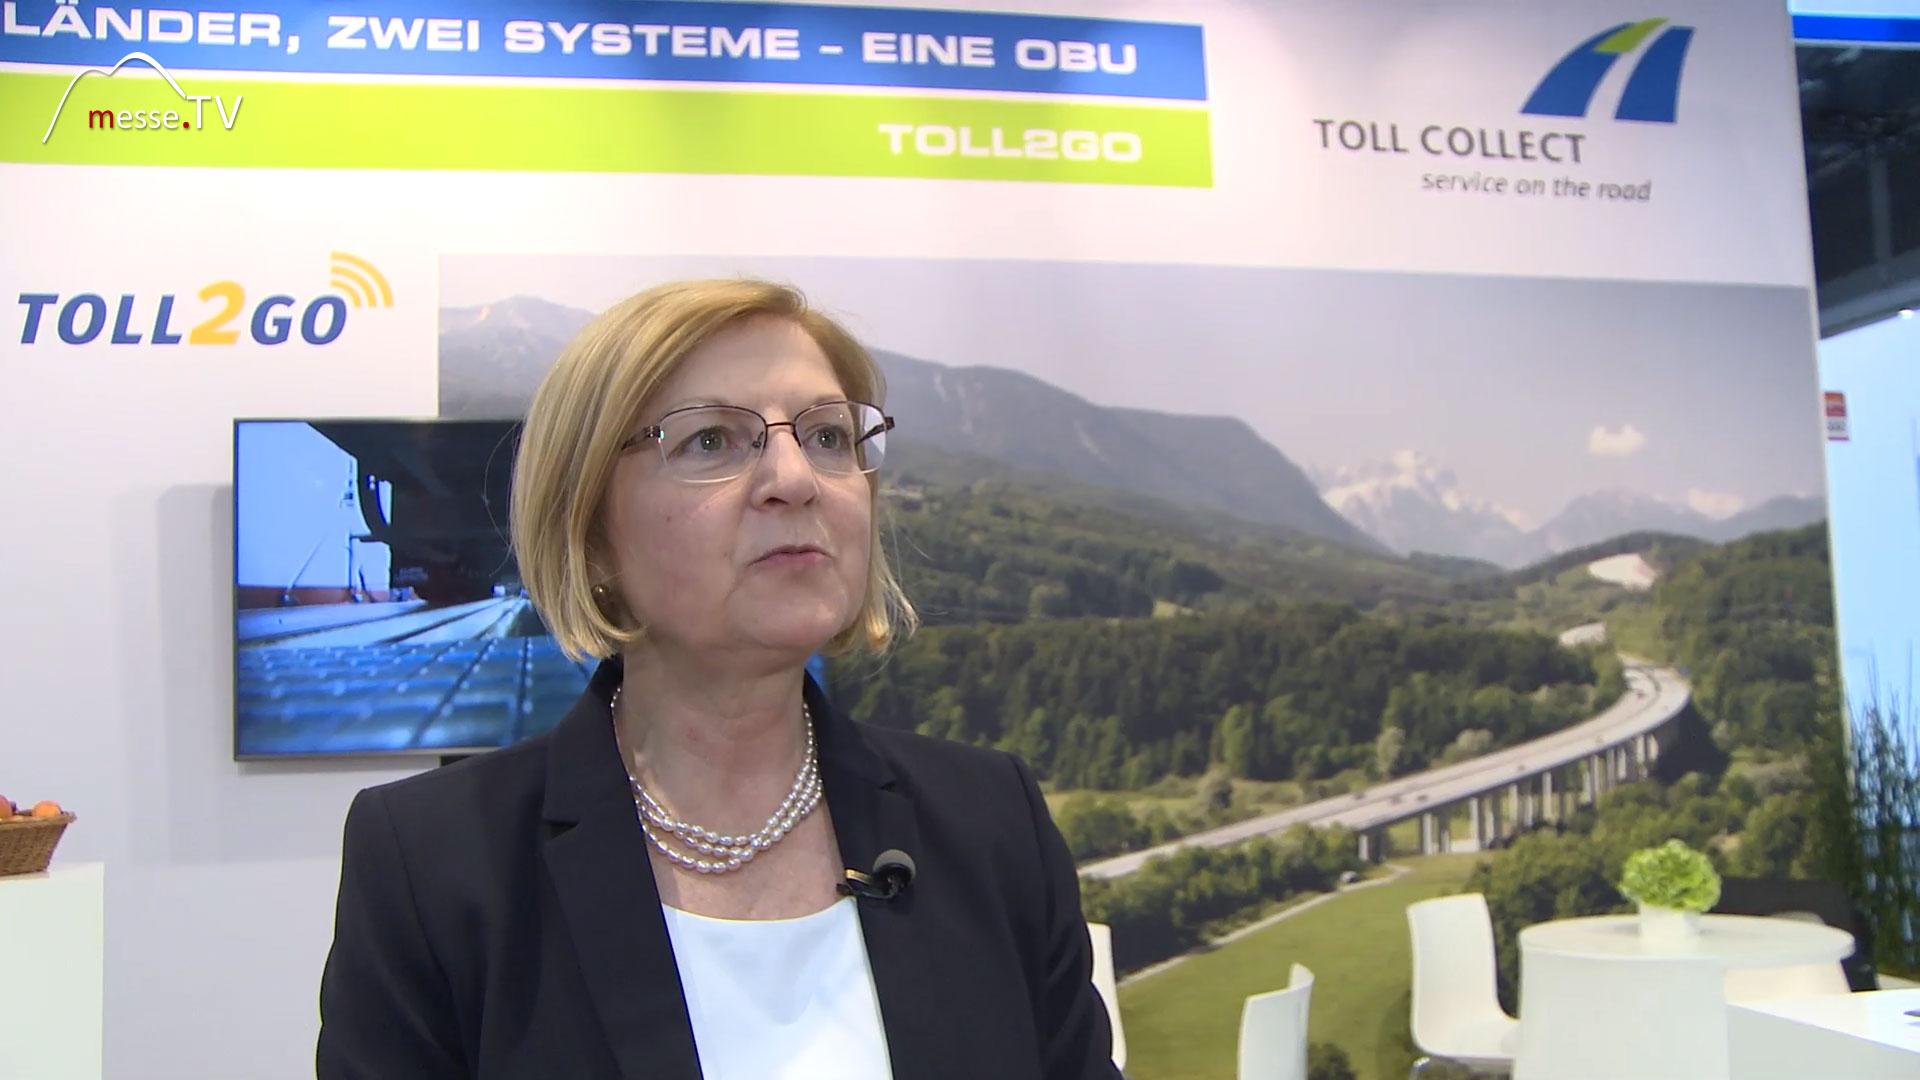 TOLL COLLECT: TOLL2GO Messe München